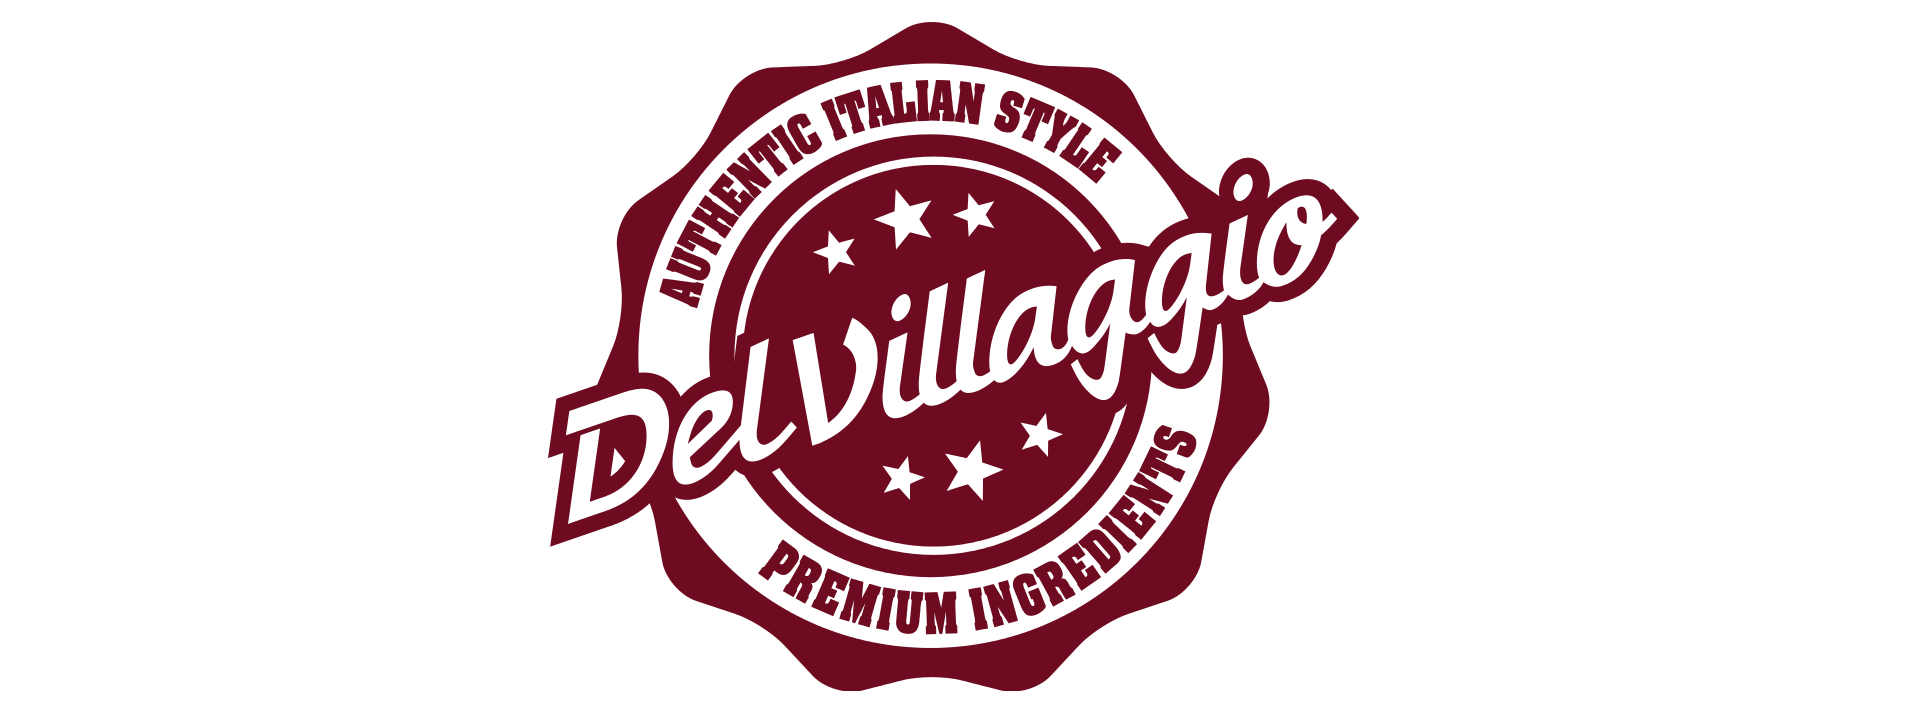 Del-V-Badge-logo